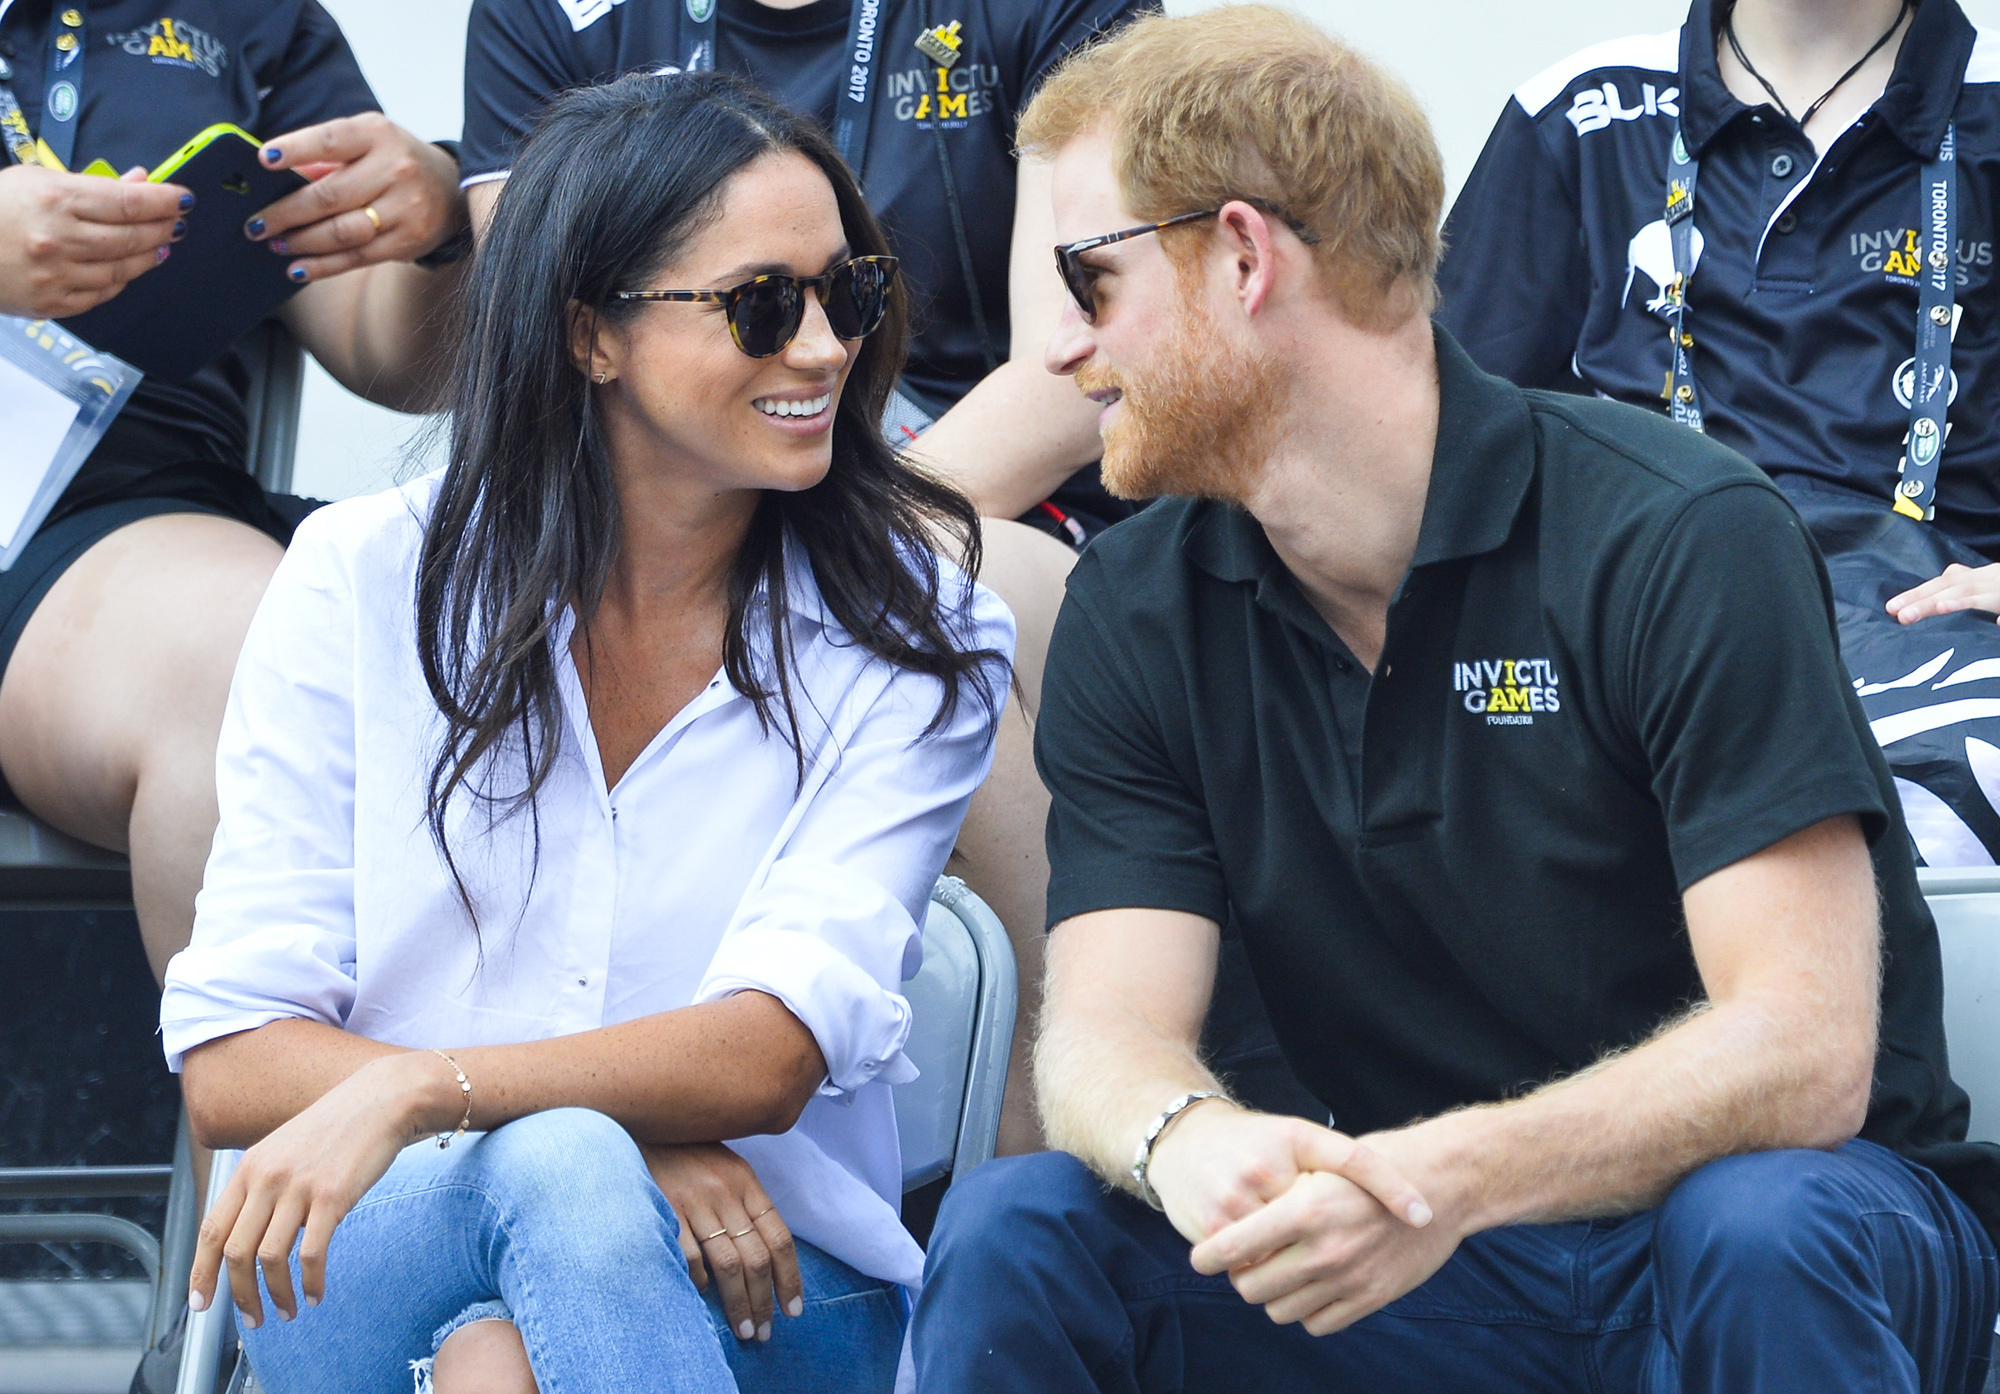 Prince Harry watches the Wheel Chair tennis as part of the Invictus games in Toronto